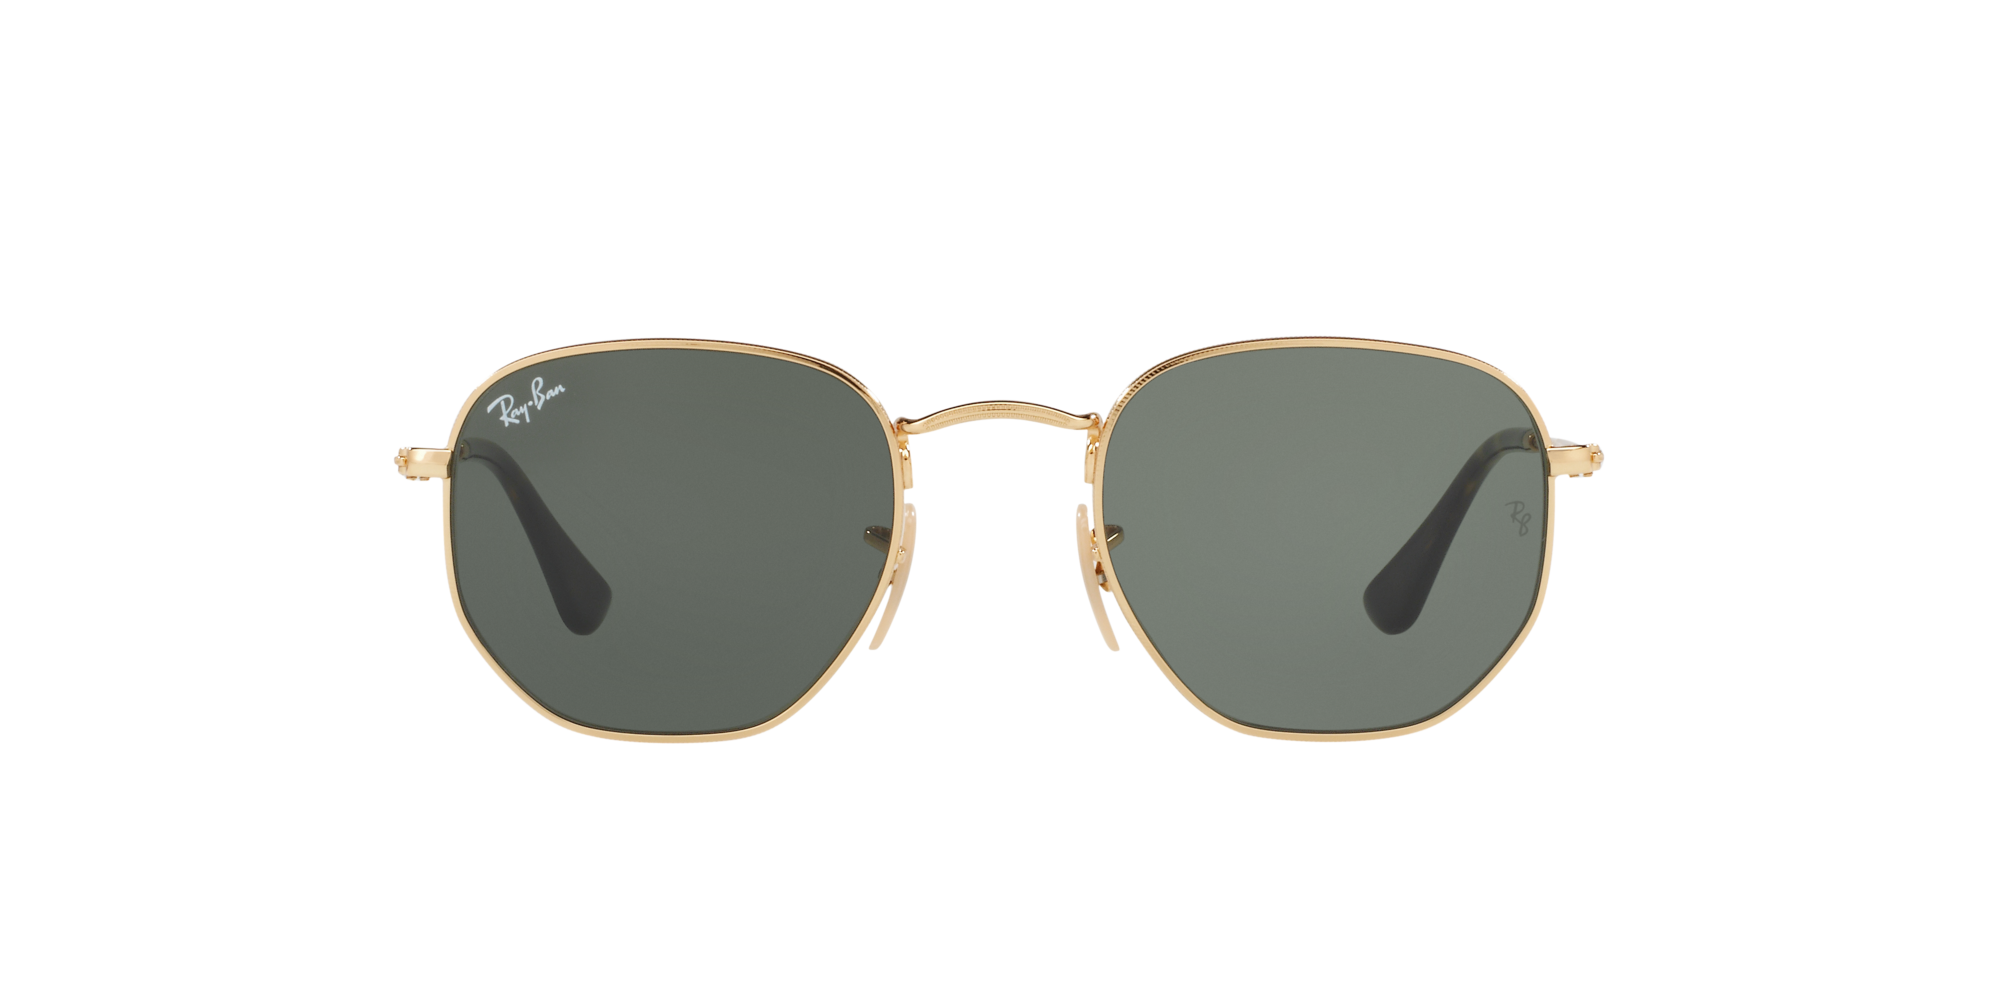 2e24310c00 Ray-Ban Hexagonal RB 3548N 001 51mm Doradas - Gafas Ray-Ban